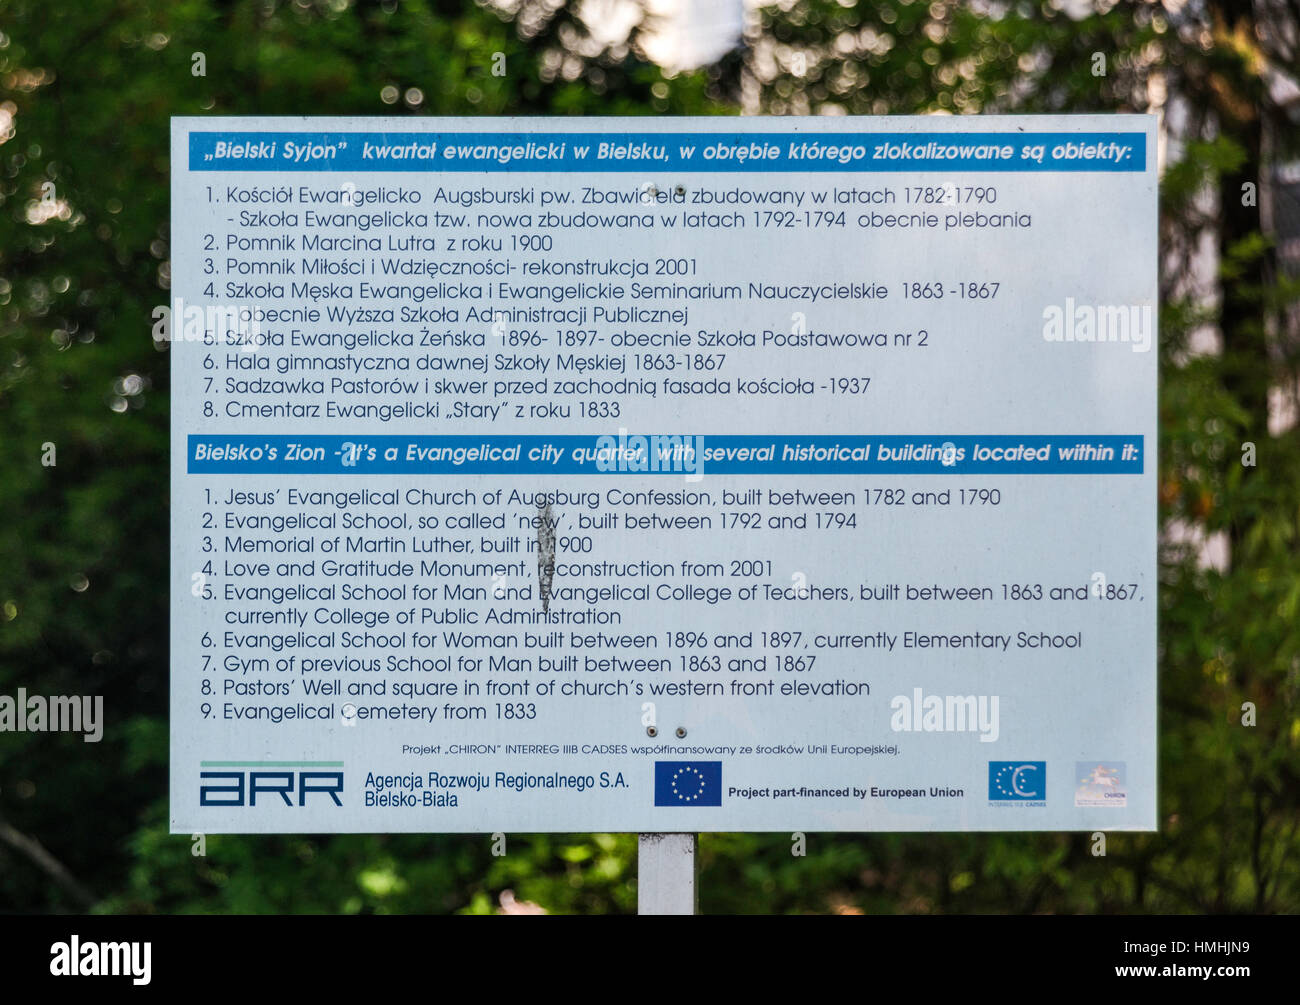 Bilingual information sign at Evangelical City Quarter in Bielsko-Biala, Silesia, Poland - Stock Image